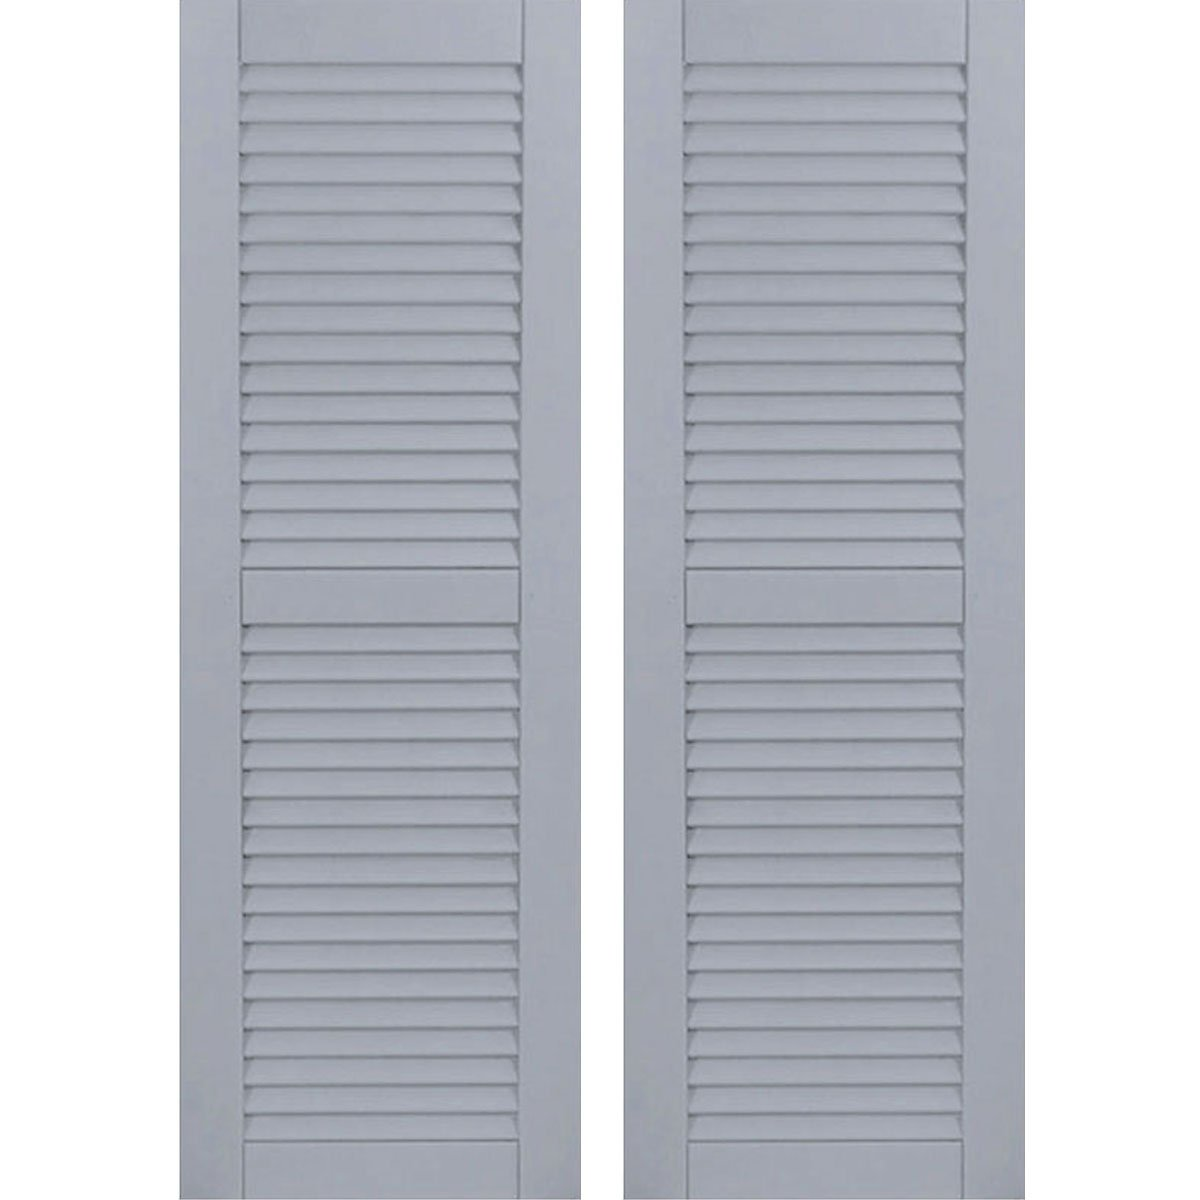 Ekena Millwork CWL18X060UNC Exterior Composite Wood Louvered Shutters with Installation Brackets (Per Pair), Unfinished, 18''W x 60''H